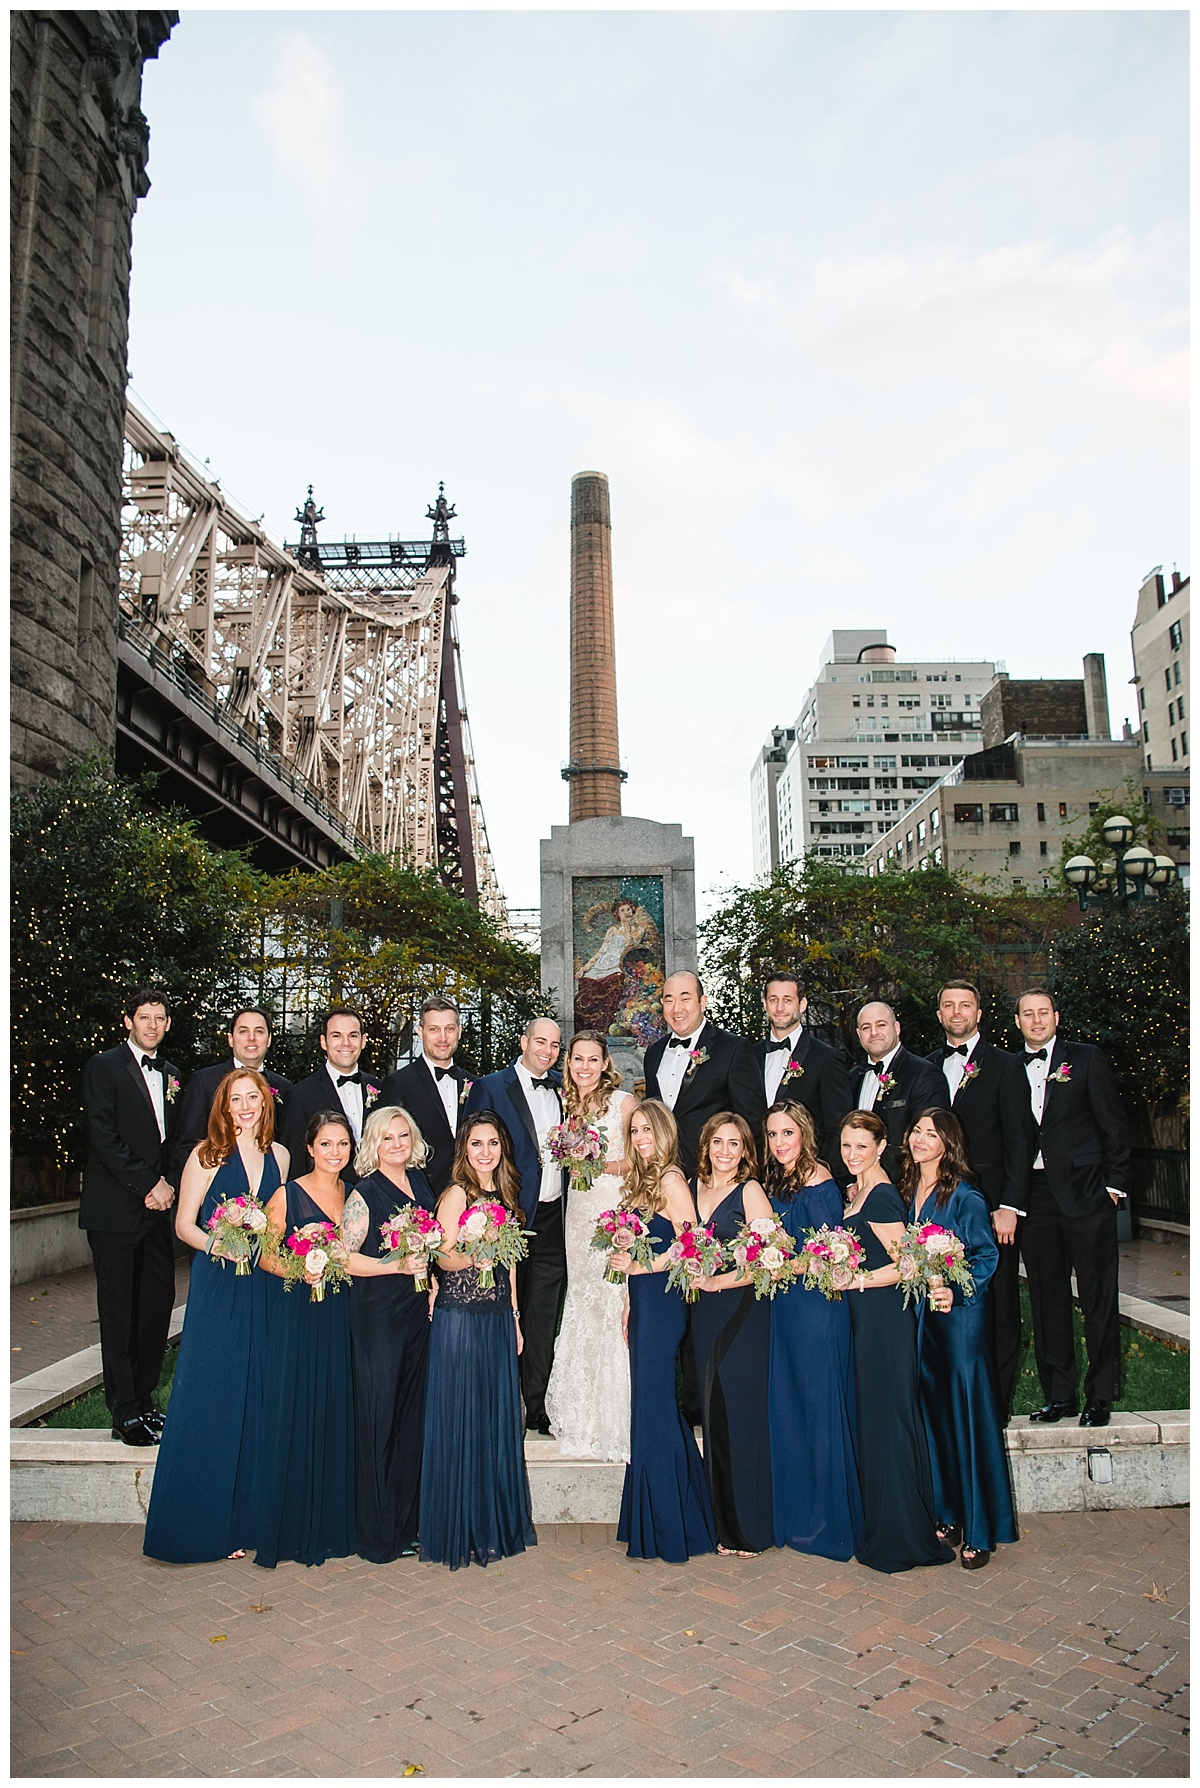 A portrait session of a bride and a groom with their wedding parties on a wedding day at Guastavinos in New York City. Dress by Ines Di Santo.